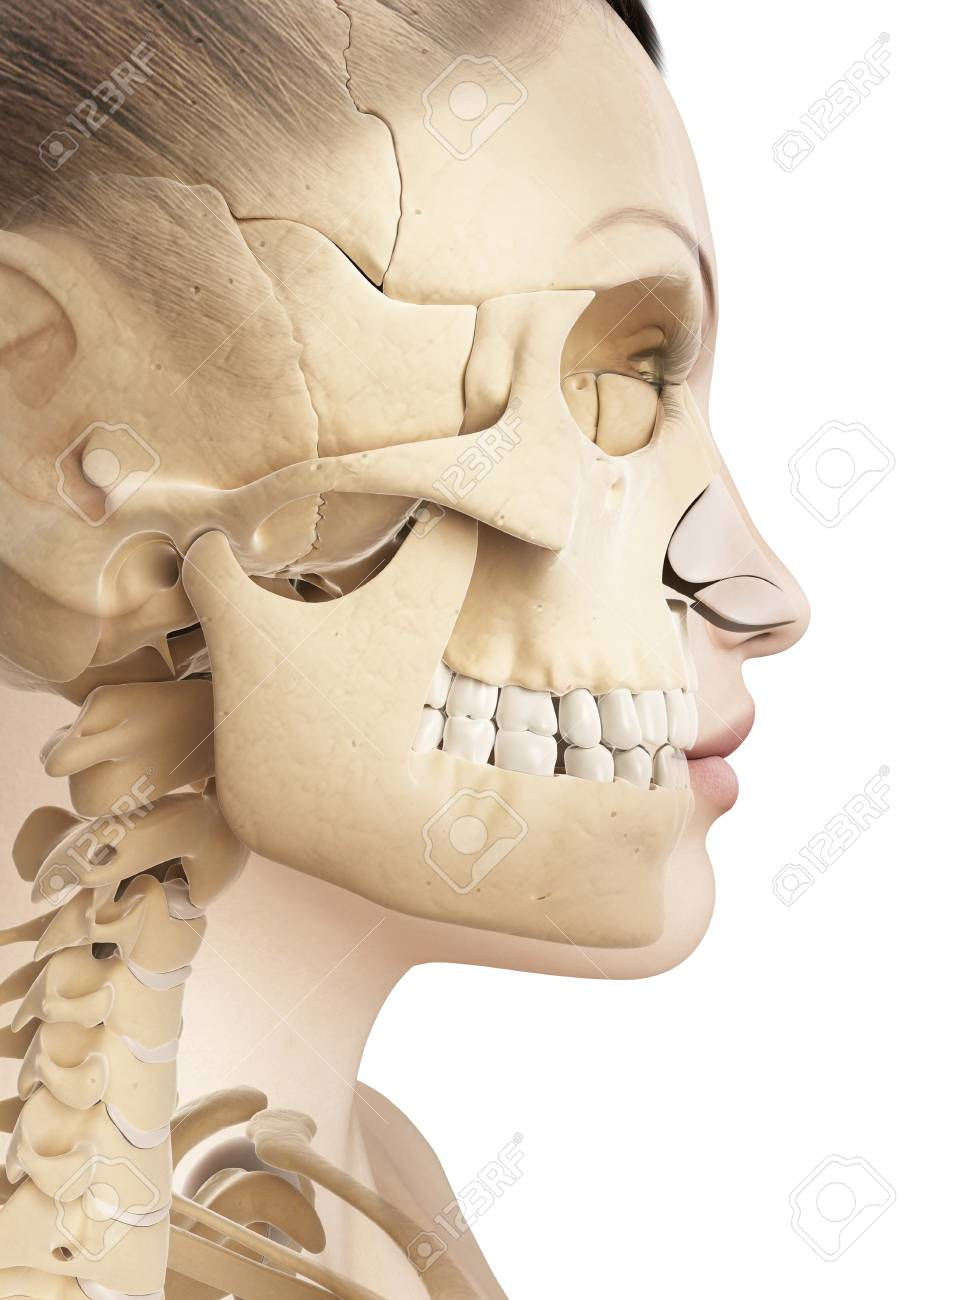 Human Jaw Bone Illustration Stock Photo Picture And Royalty Free